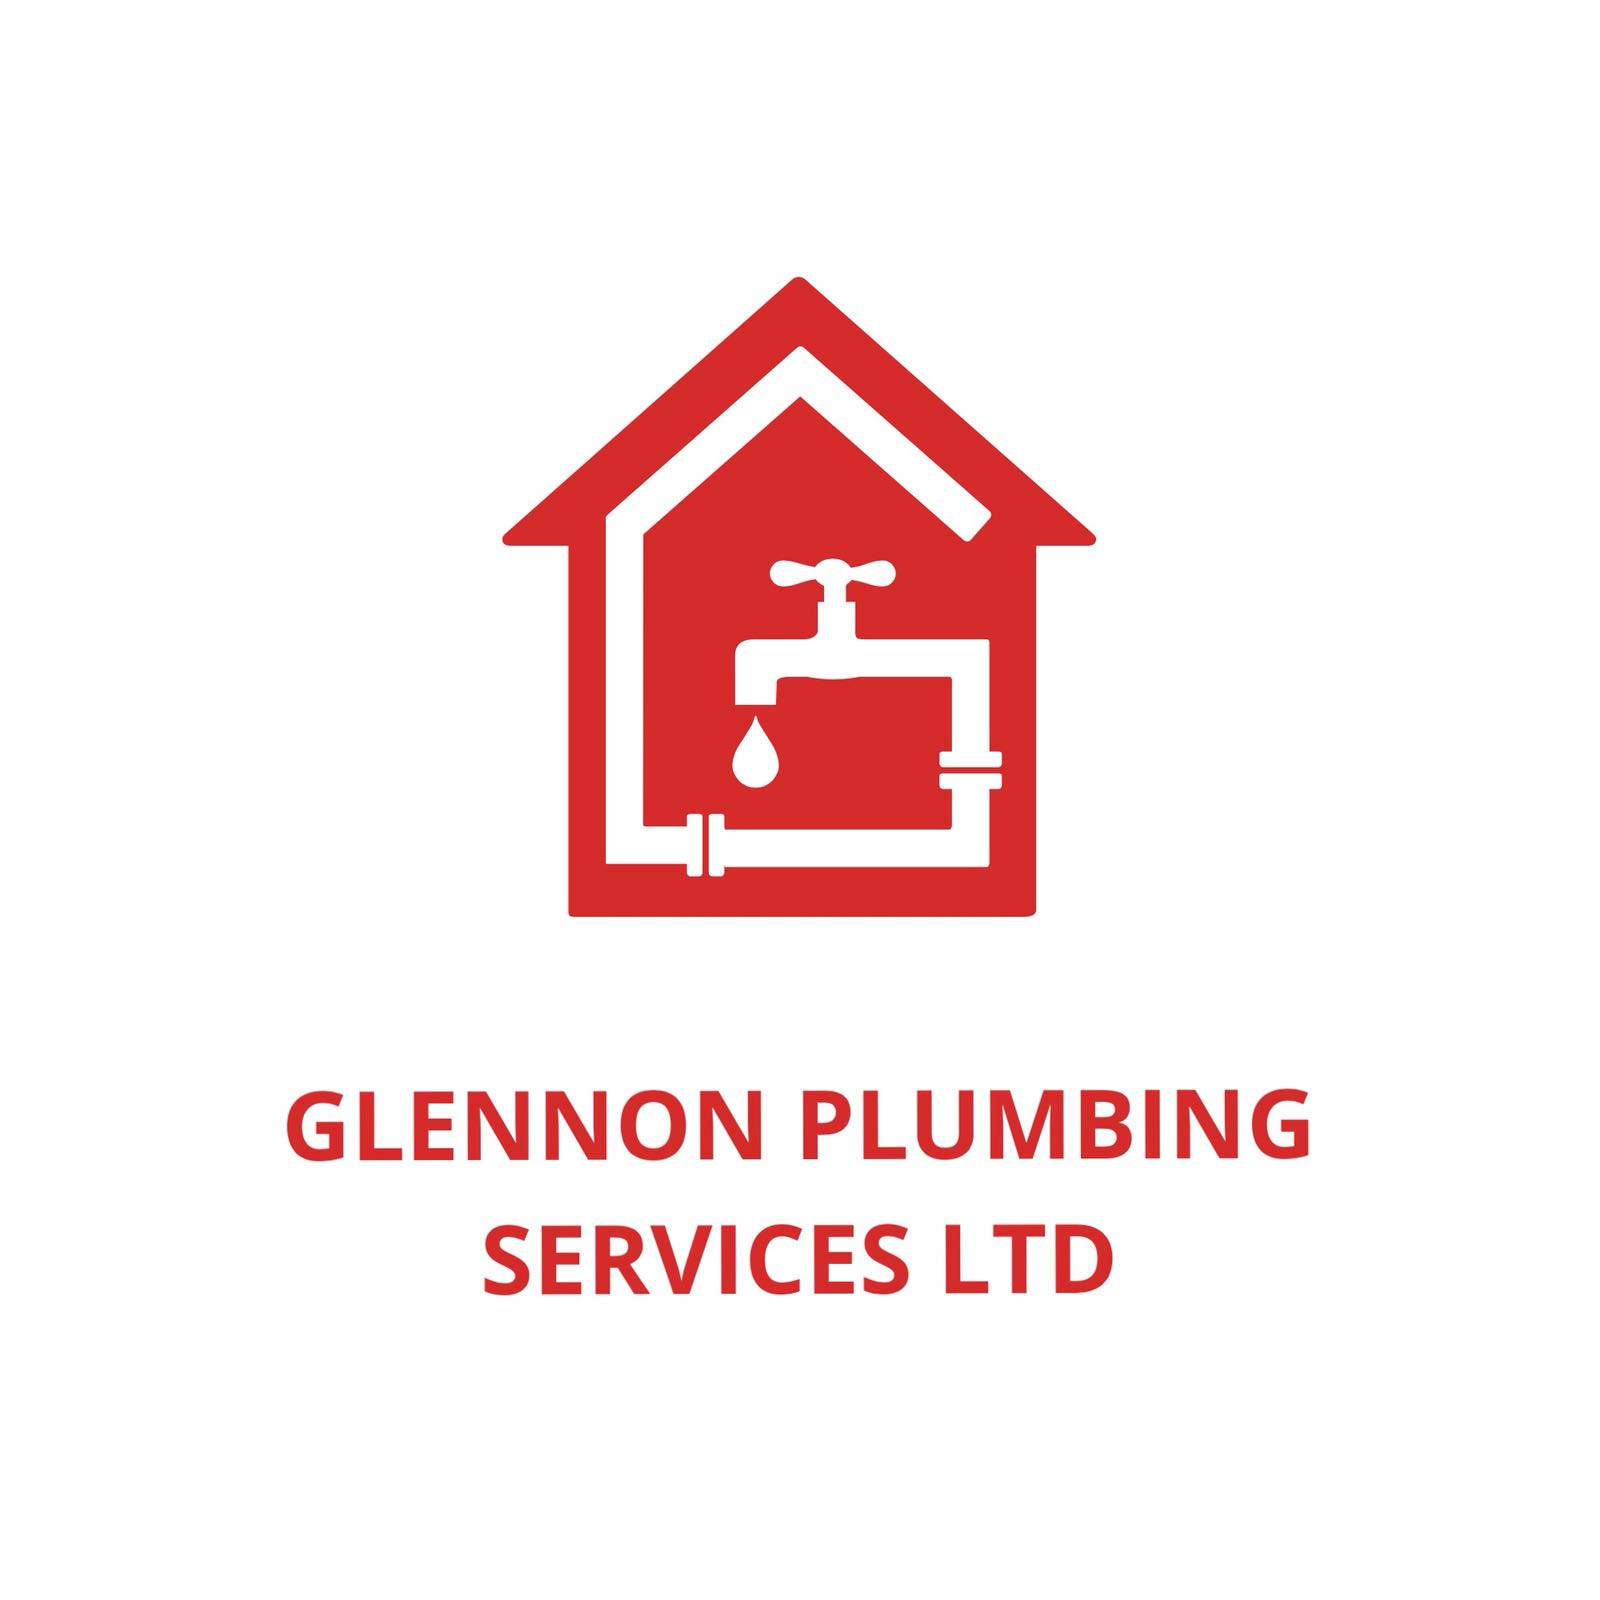 Glennon plumbing services ltd Verified Logo